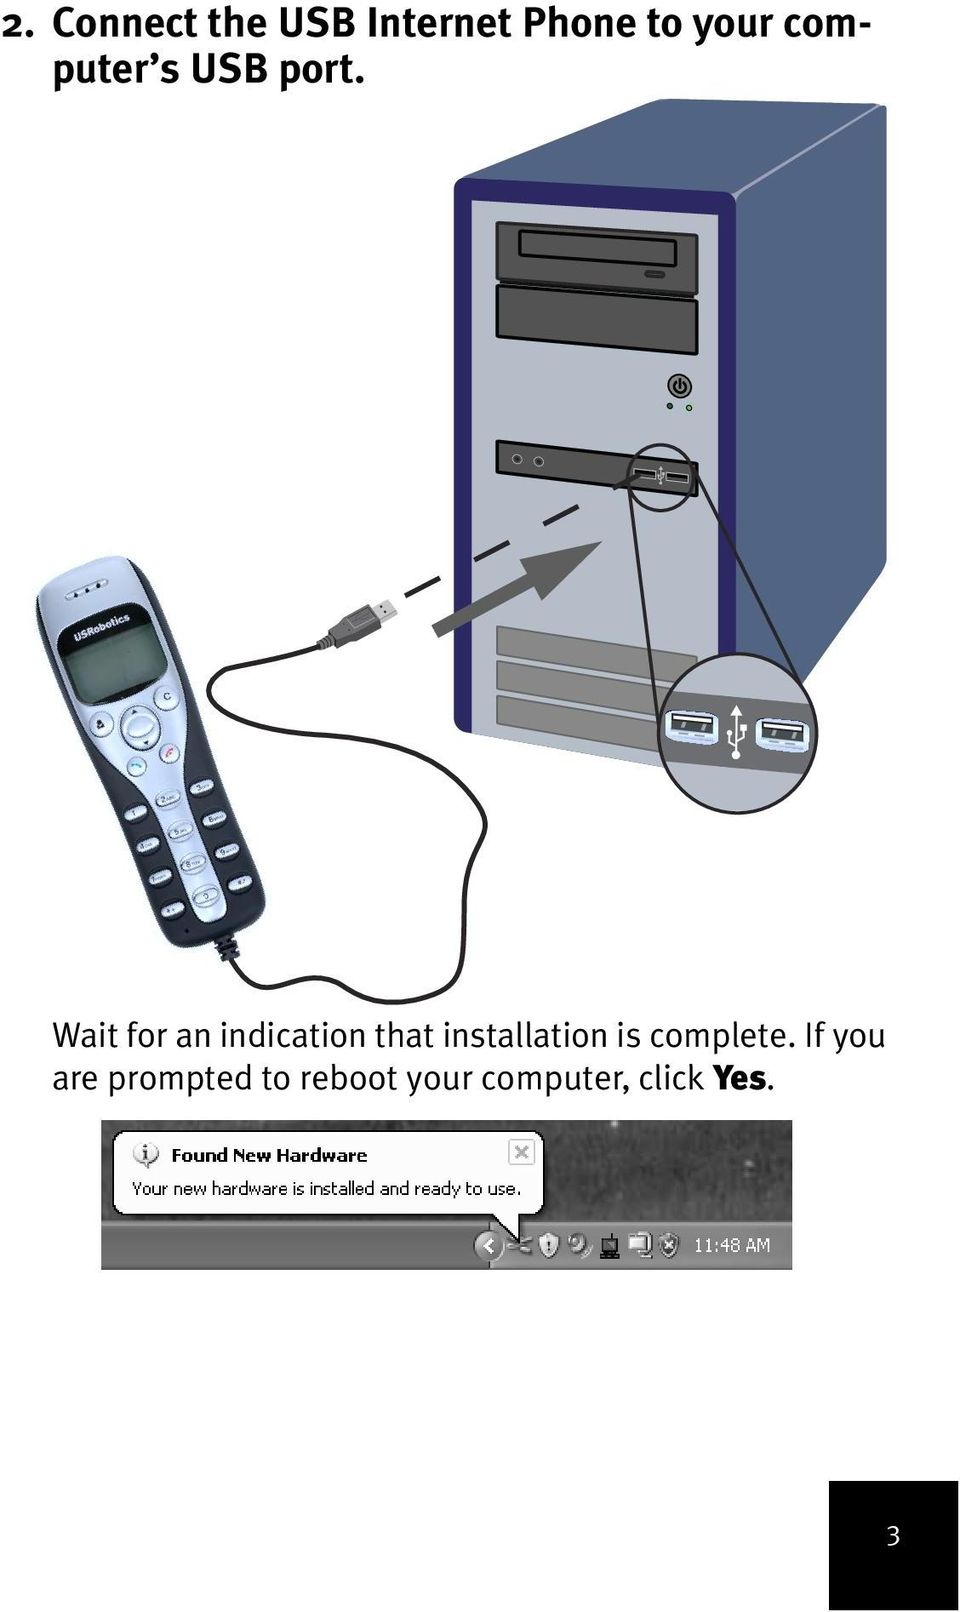 Wait for an indication that installation is